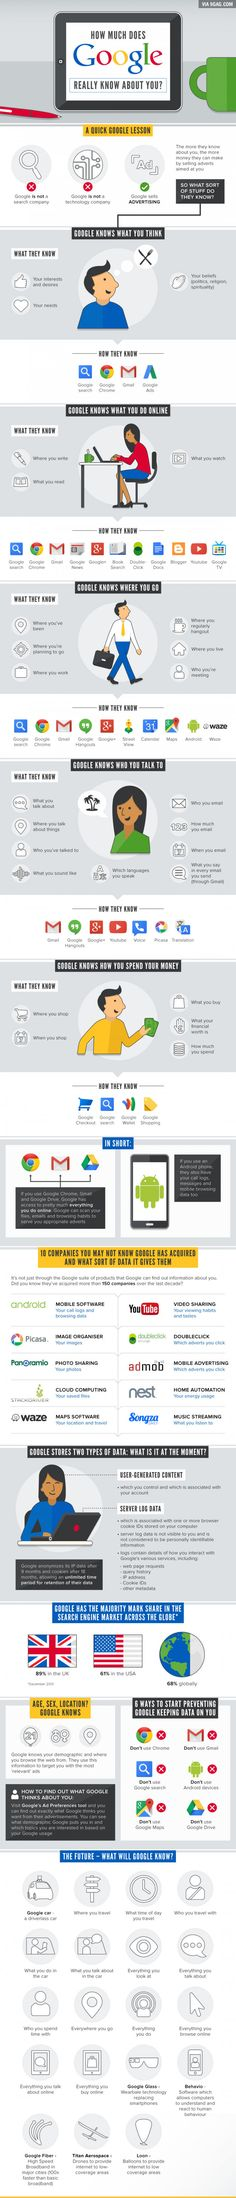 Google knows everything about you...